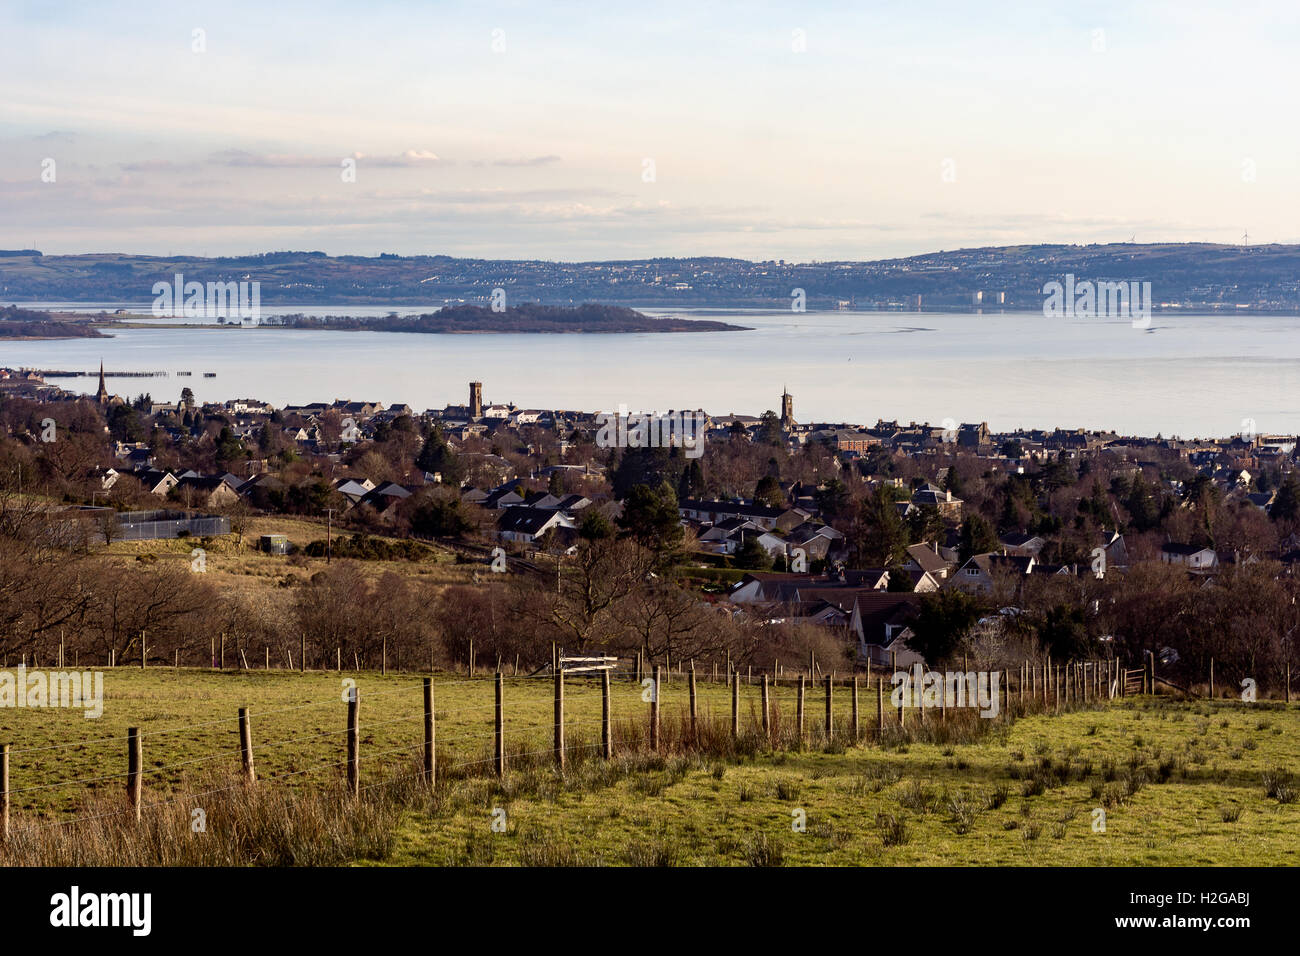 A small town on the river Clyde Scotland UK - Stock Image